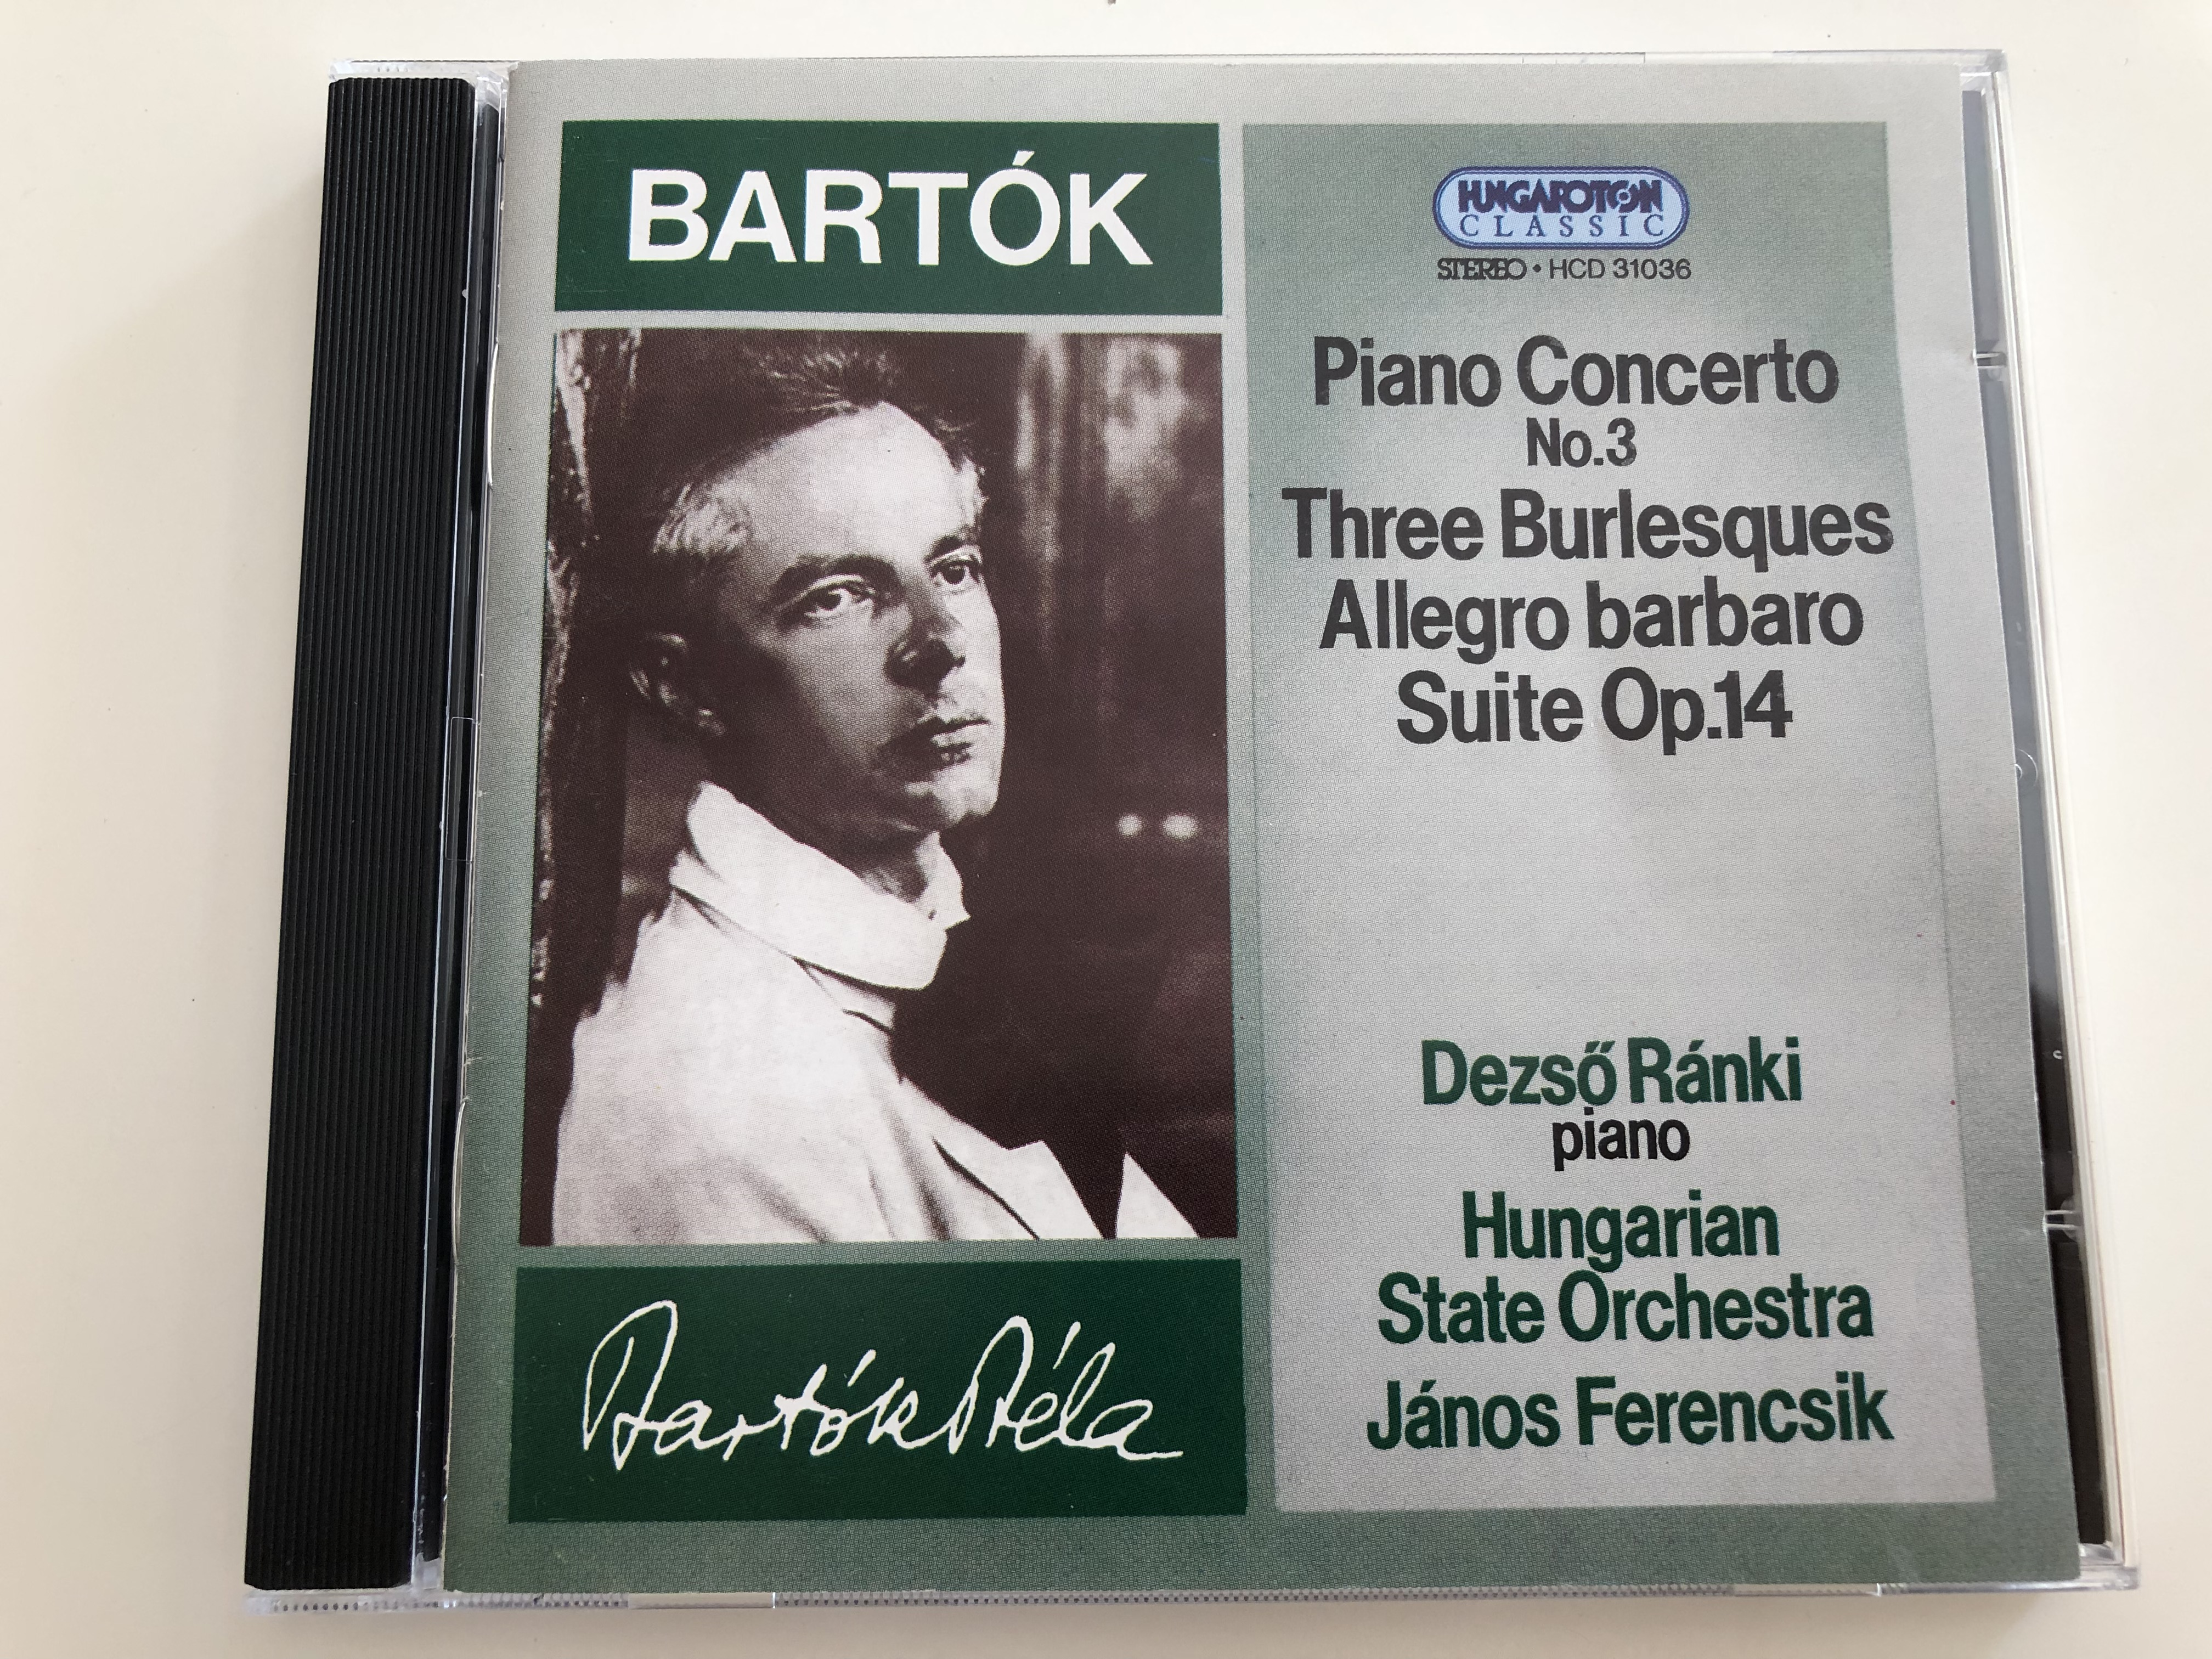 -bart-k-piano-concerto-no.-3-three-burlesques-allegro-barbaro-suite-op.-14-dezs-r-nki-piano-hungarian-state-orchestra-cond.-j-nos-ferencsik-hungaroton-hcd-31036-audio-cd-1994-1-.jpg